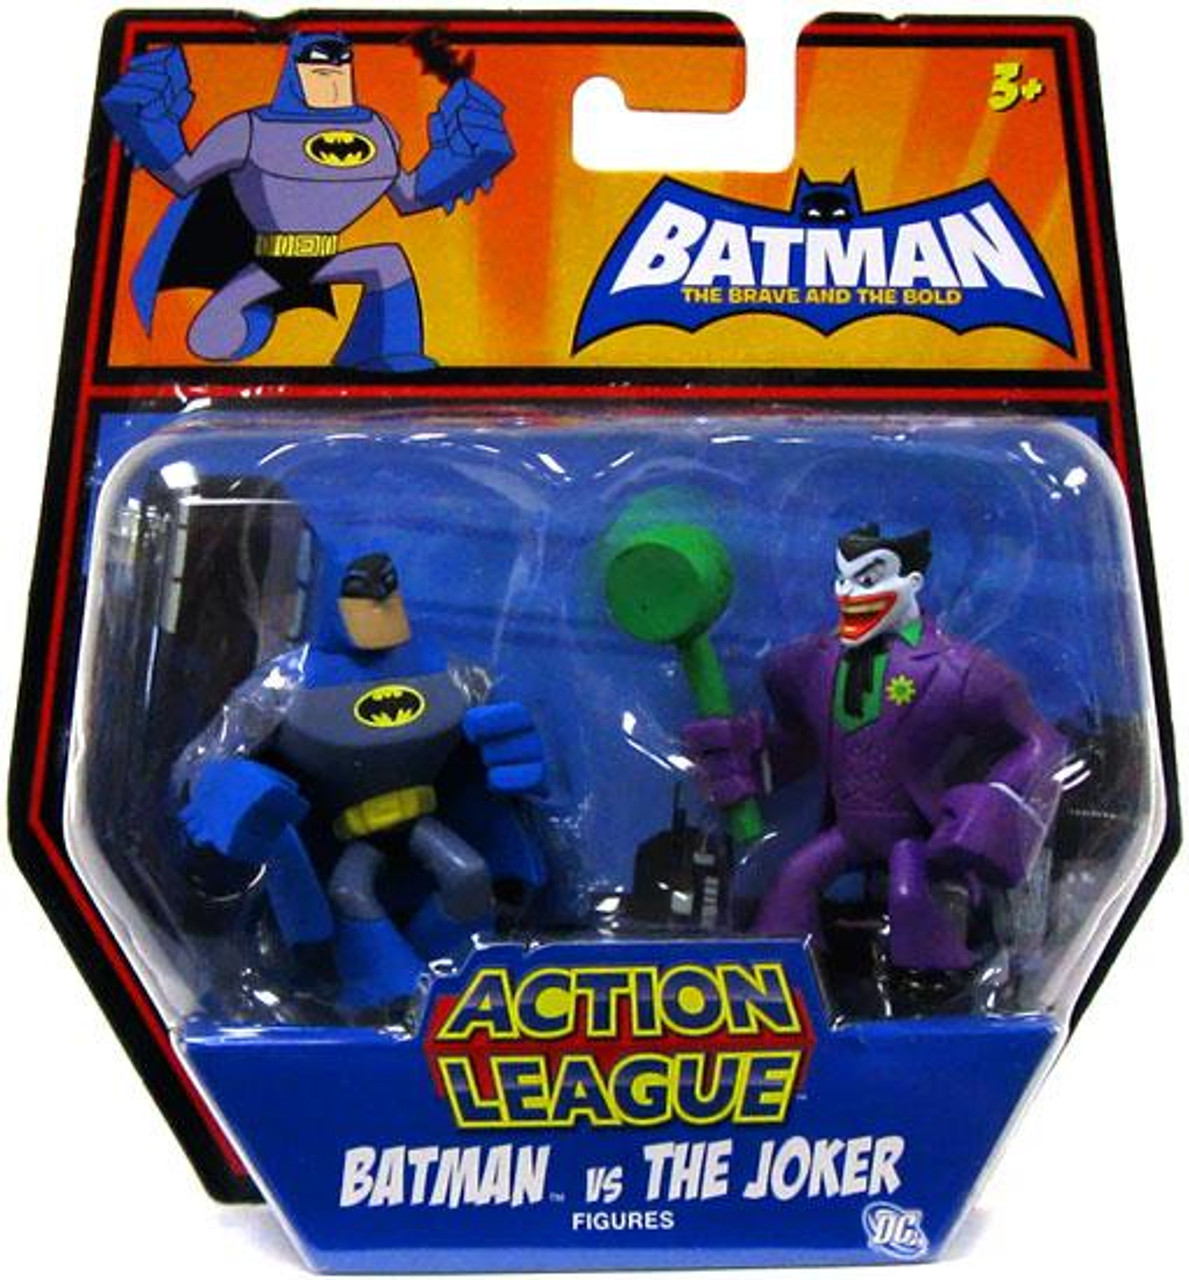 The Brave and the Bold Action League Batman Vs. The Joker Mini Figure 2-Pack